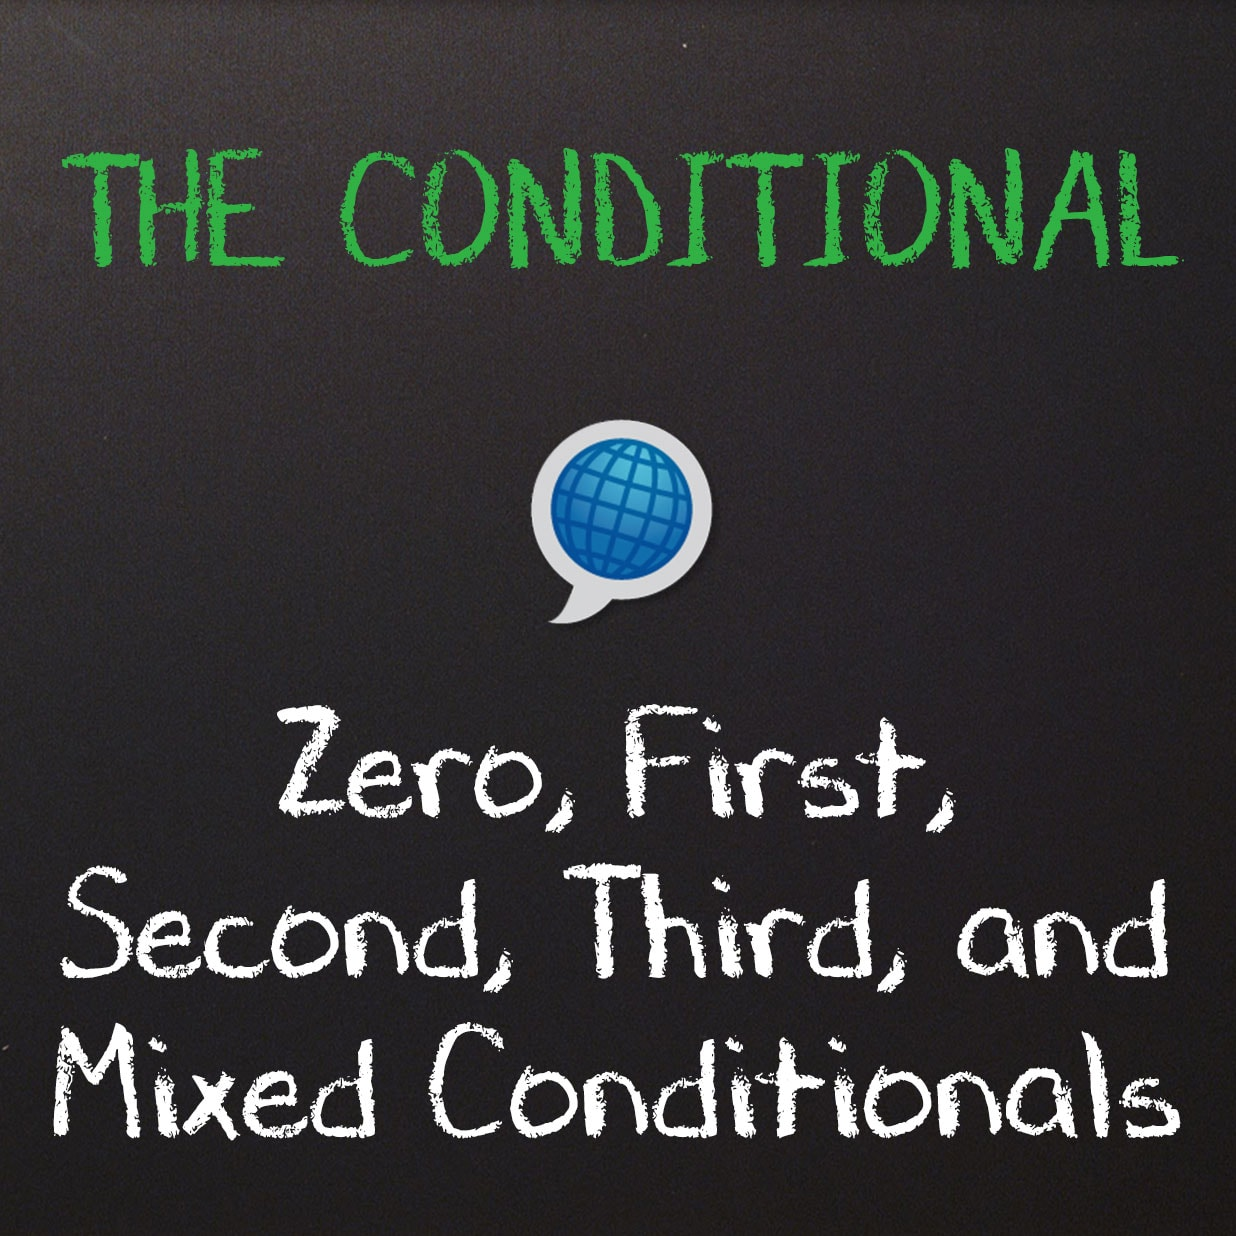 The Conditional Tense Zero First Second Third And Mixed